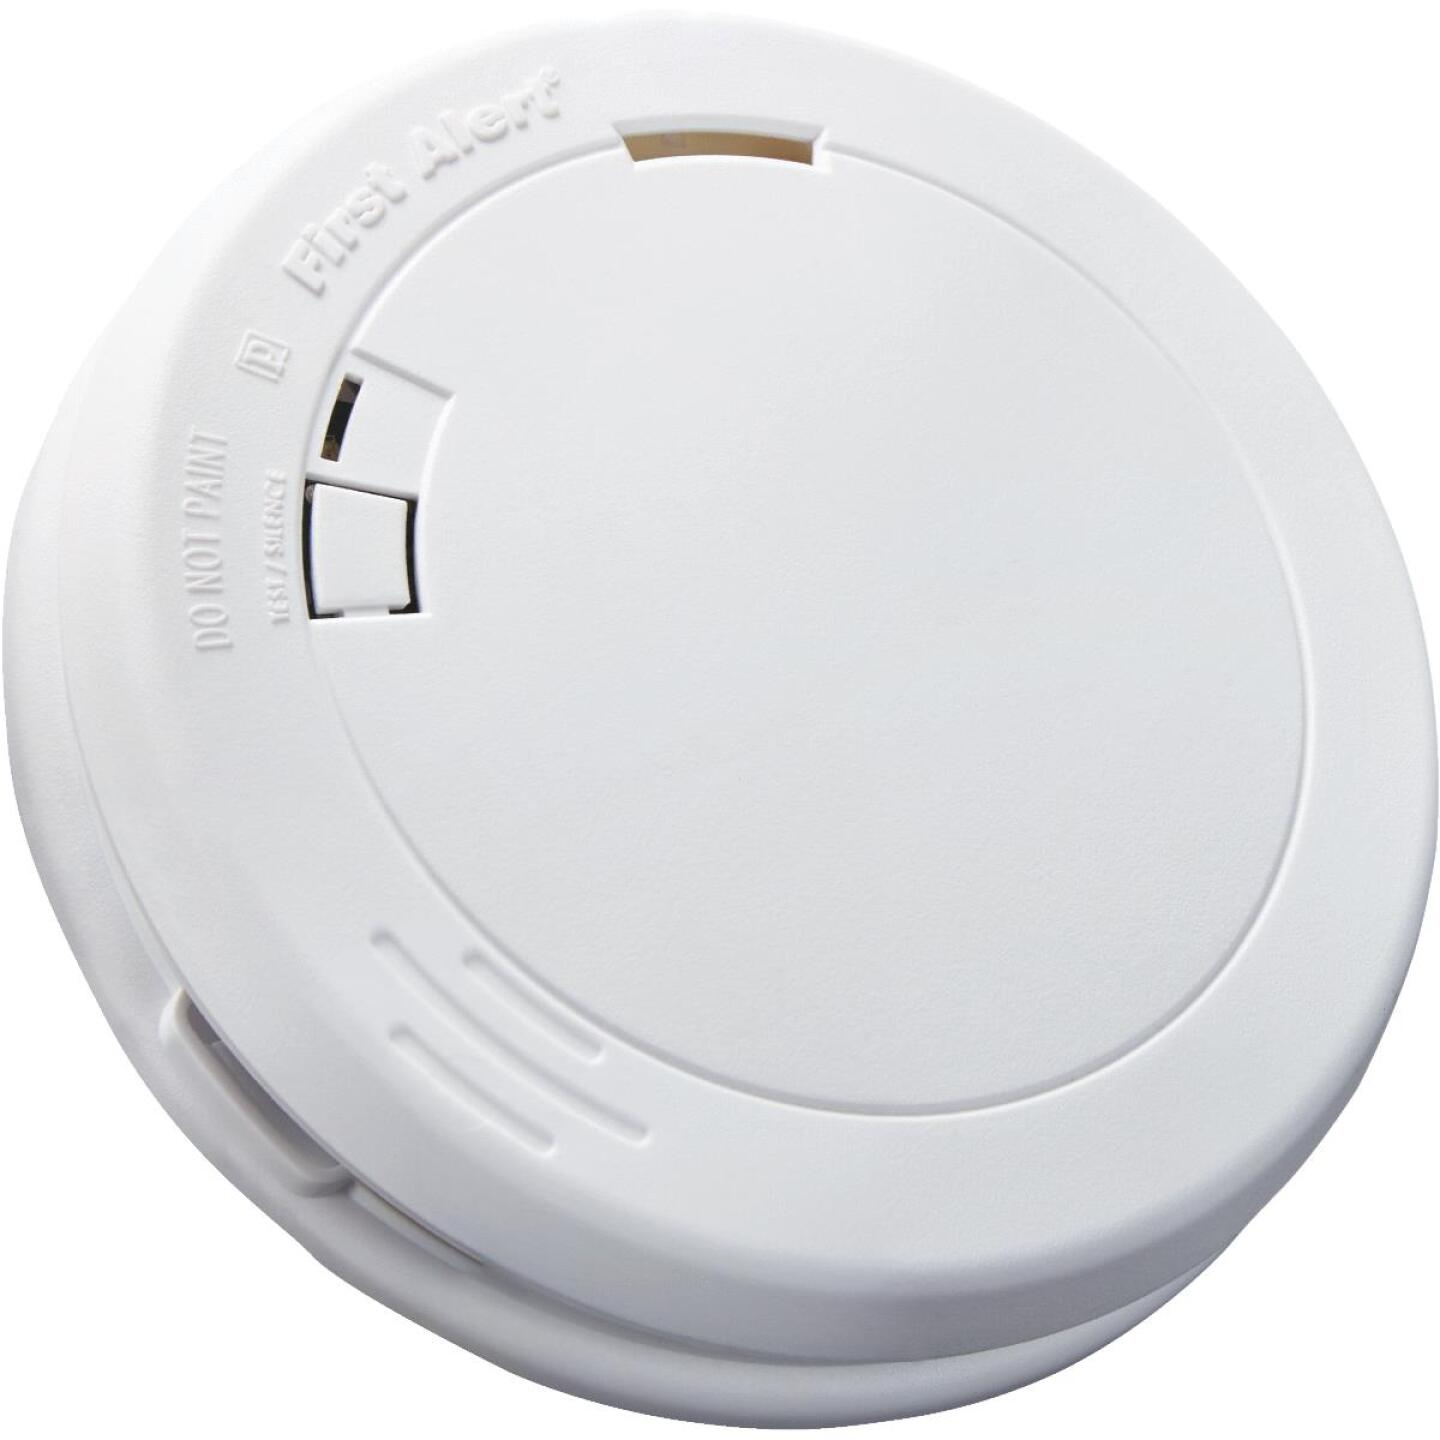 First Alert 10-Year Sealed Battery Photoelectric Slim Round Smoke Alarm Image 4